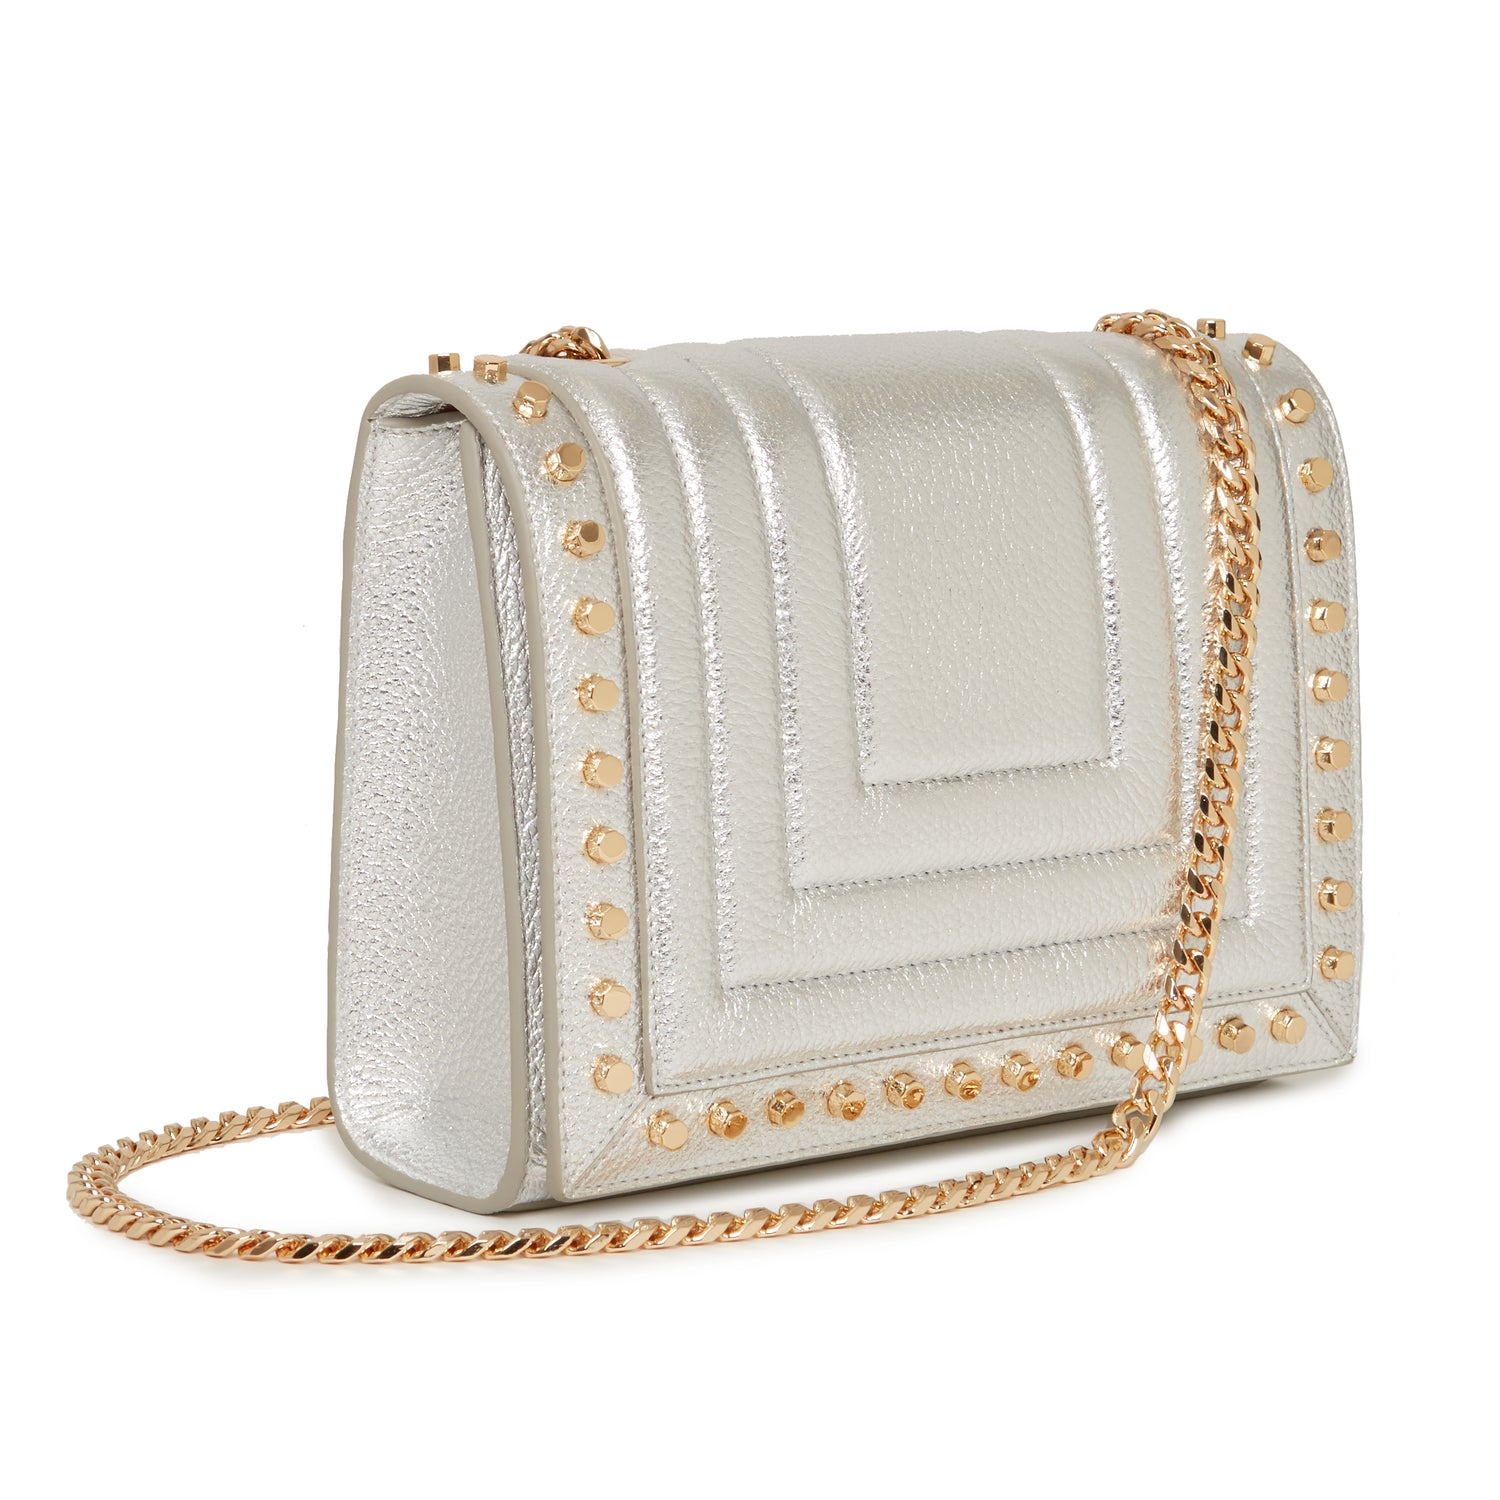 Devon Crossbody in Silver